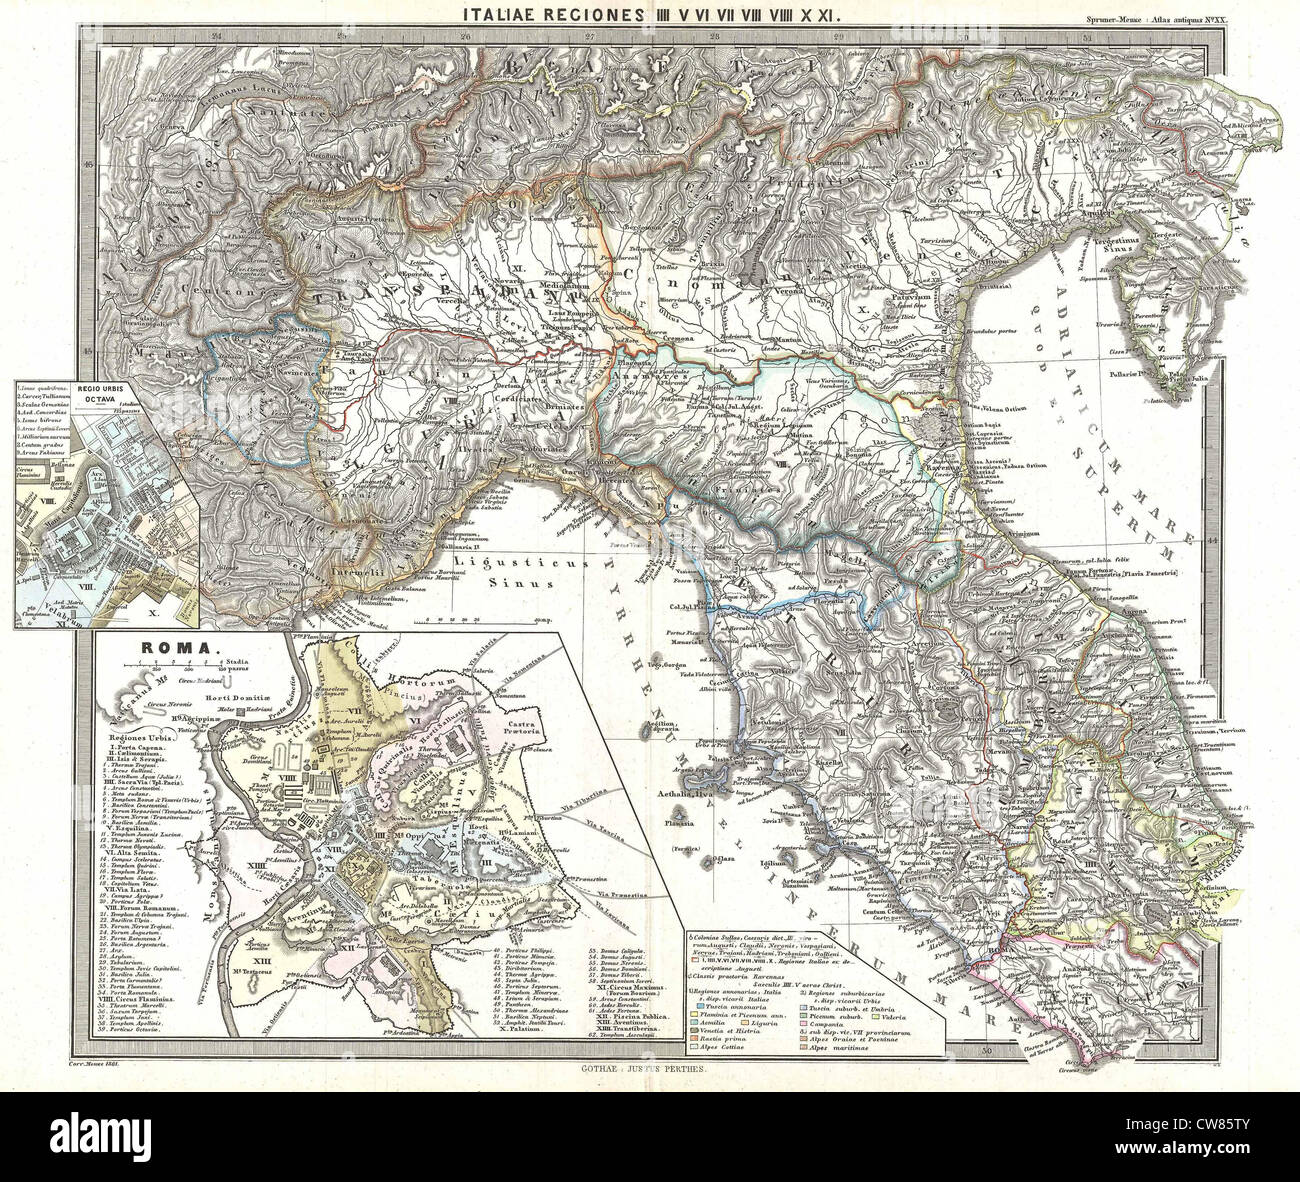 1865 Spruner Map of Northern Italy in Antiquity - Stock Image